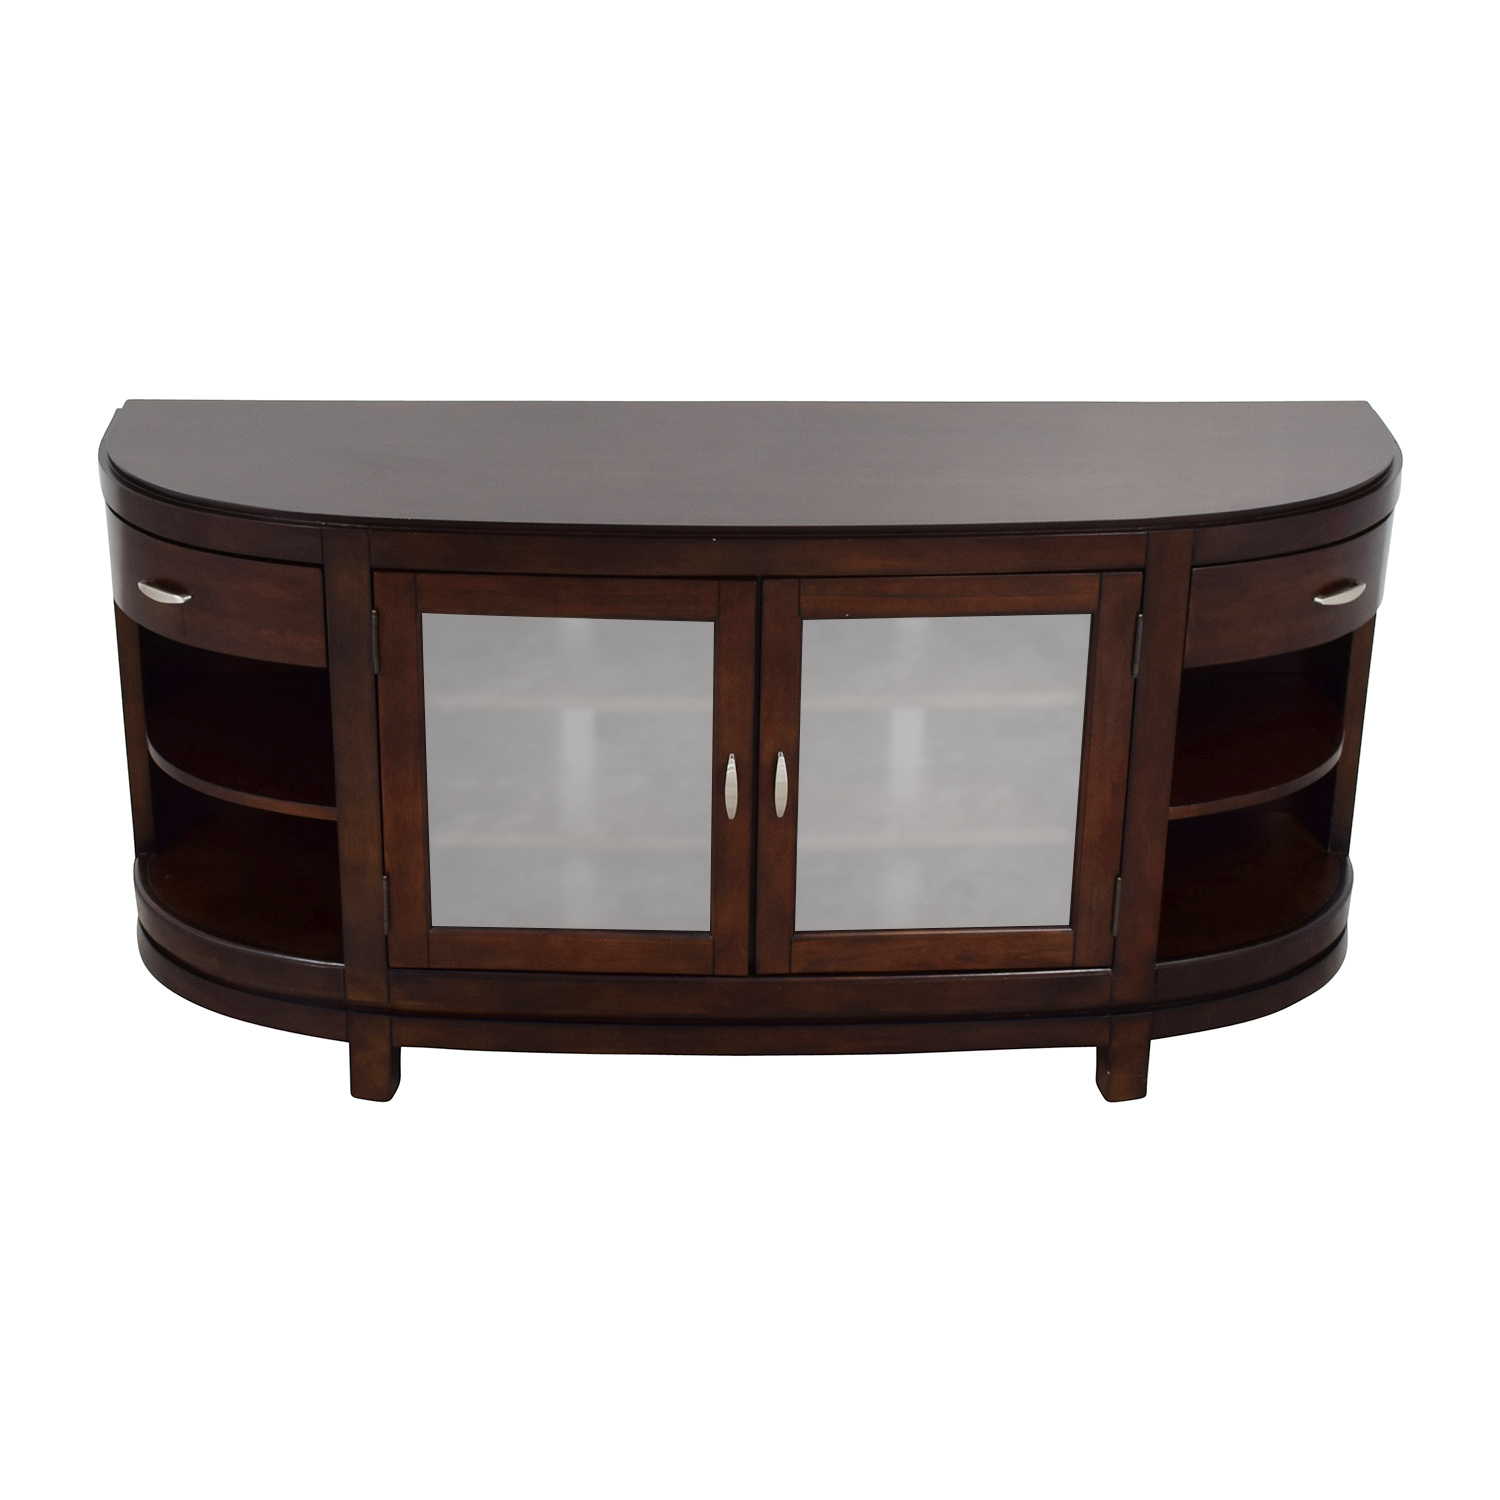 Raymour & Flanigan Raymour & Flanigan Avalon 67 TV Console brown